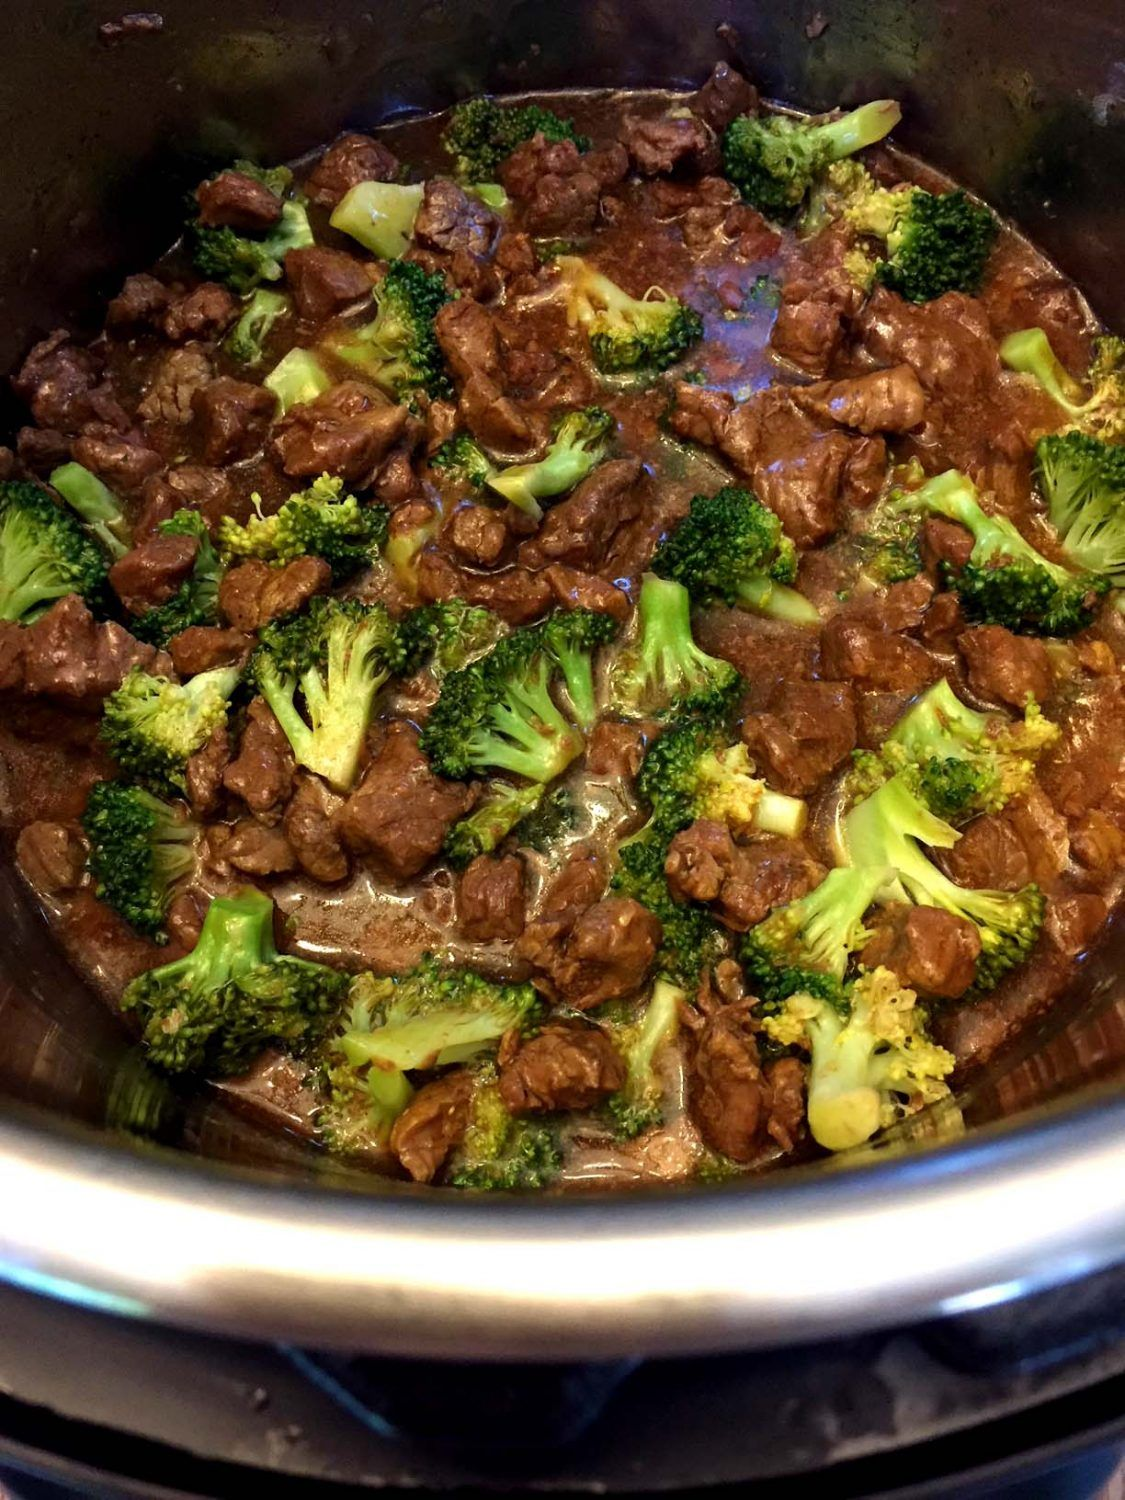 Instant Pot Beef And Broccoli Recipe Recipe In 2020 Broccoli Beef Broccoli Recipes Broccoli Dishes